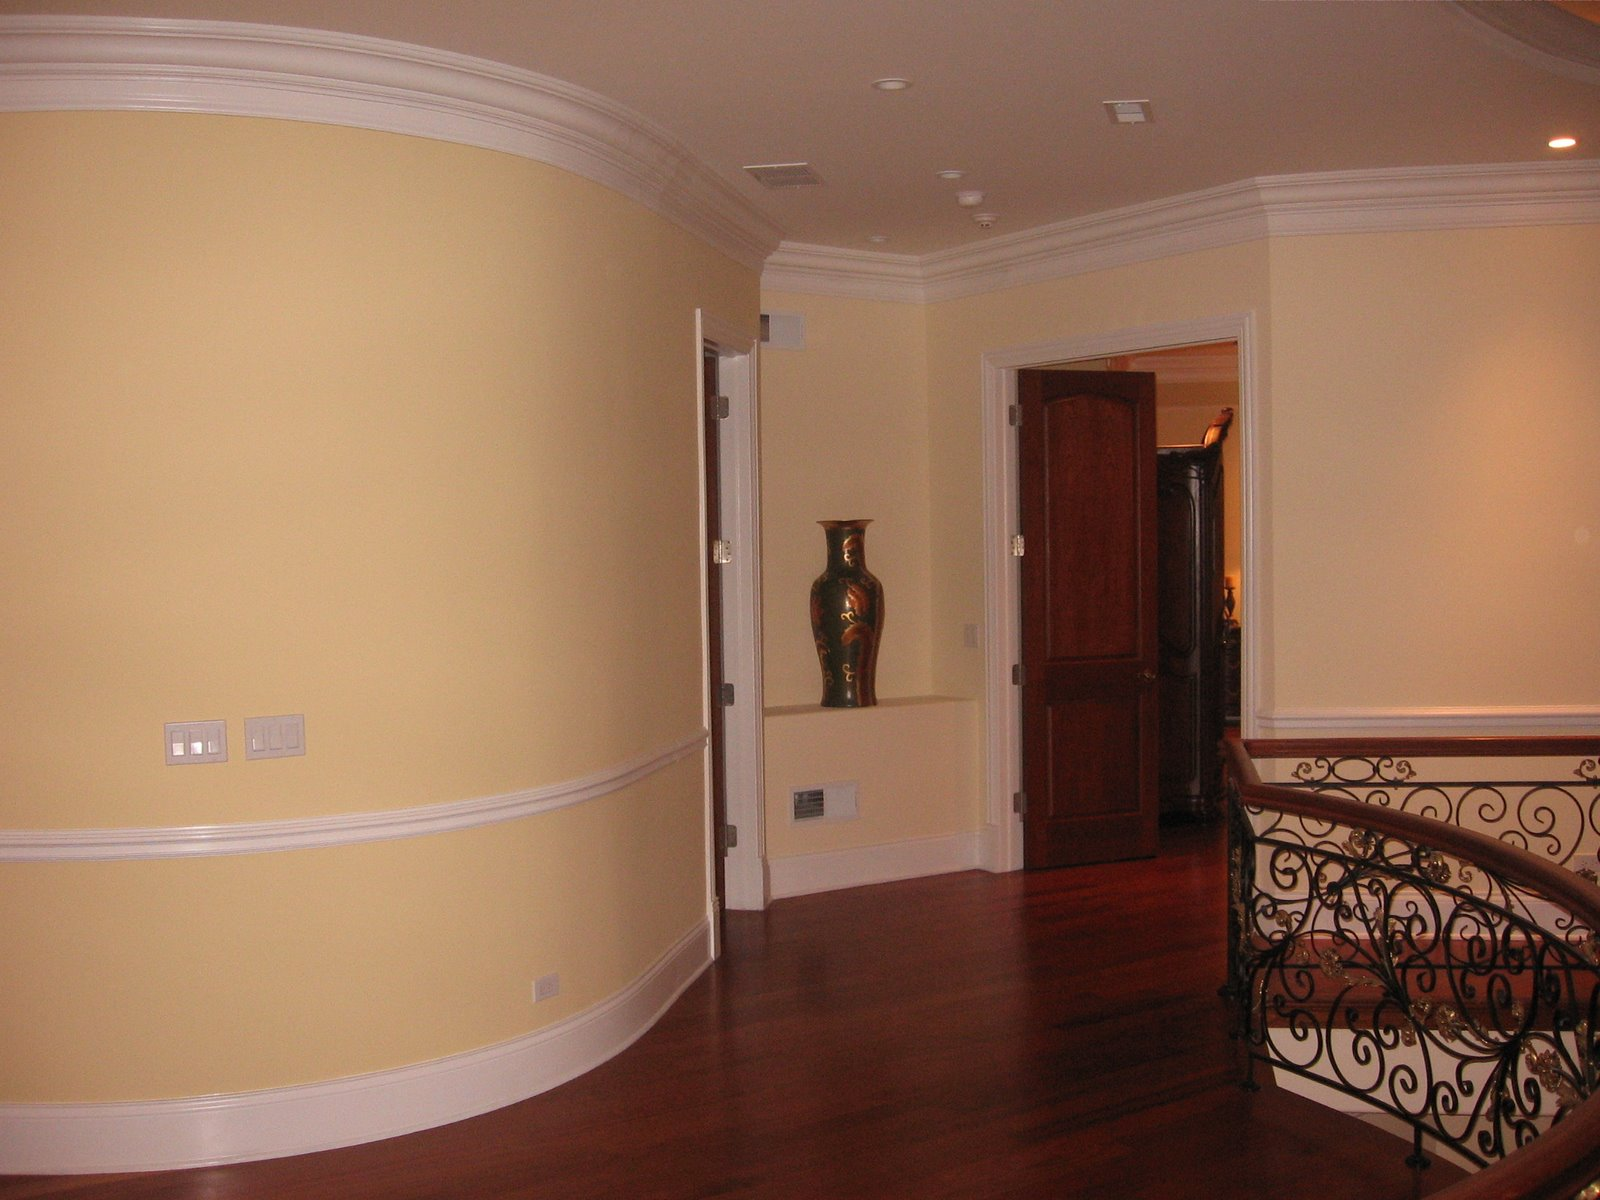 Interior painting contractors portland or vancouver wa for House paint design interior and exterior